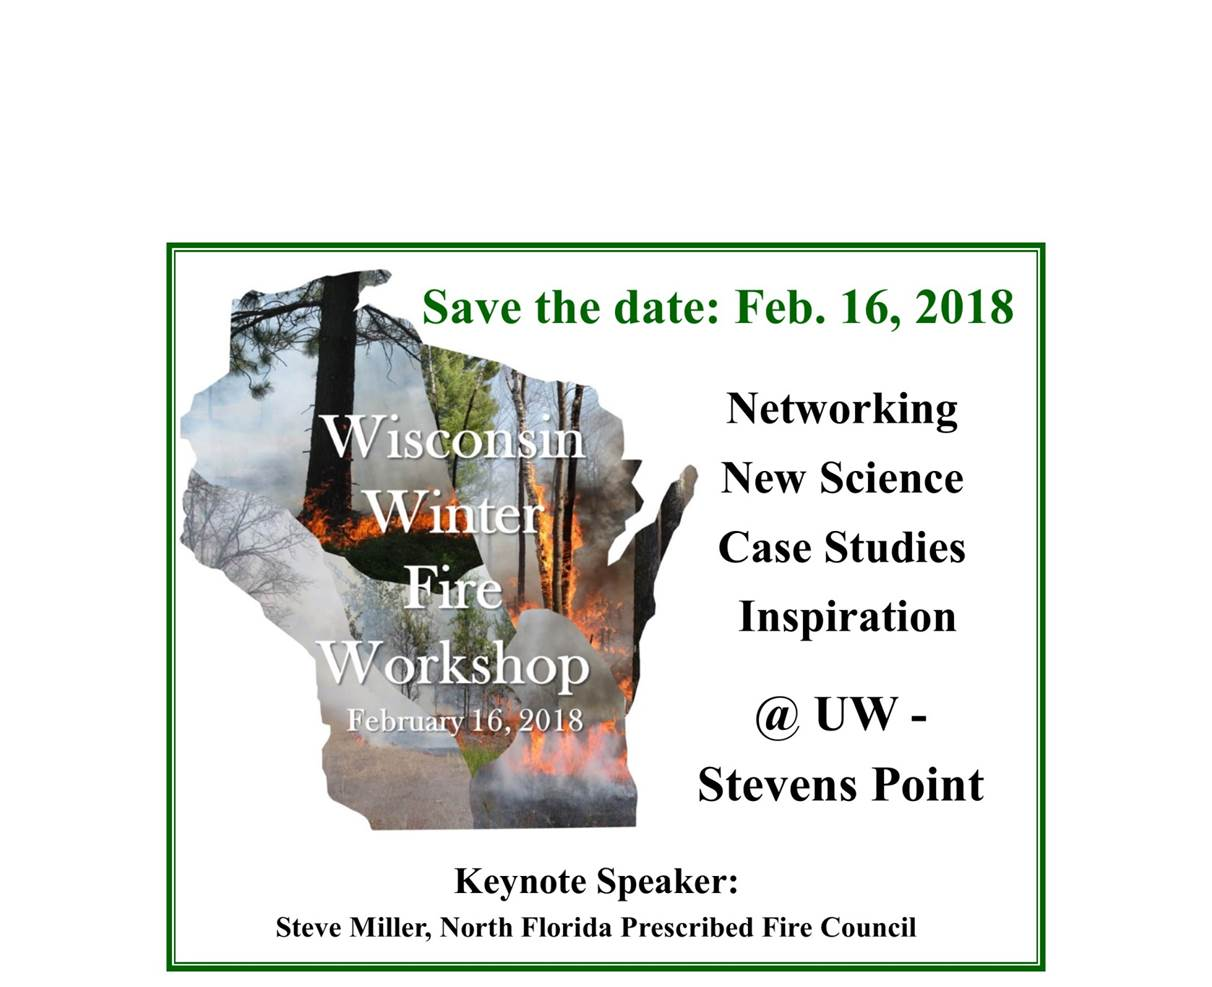 2nd Annual Wisconsin Winter Fire Workshop 2018